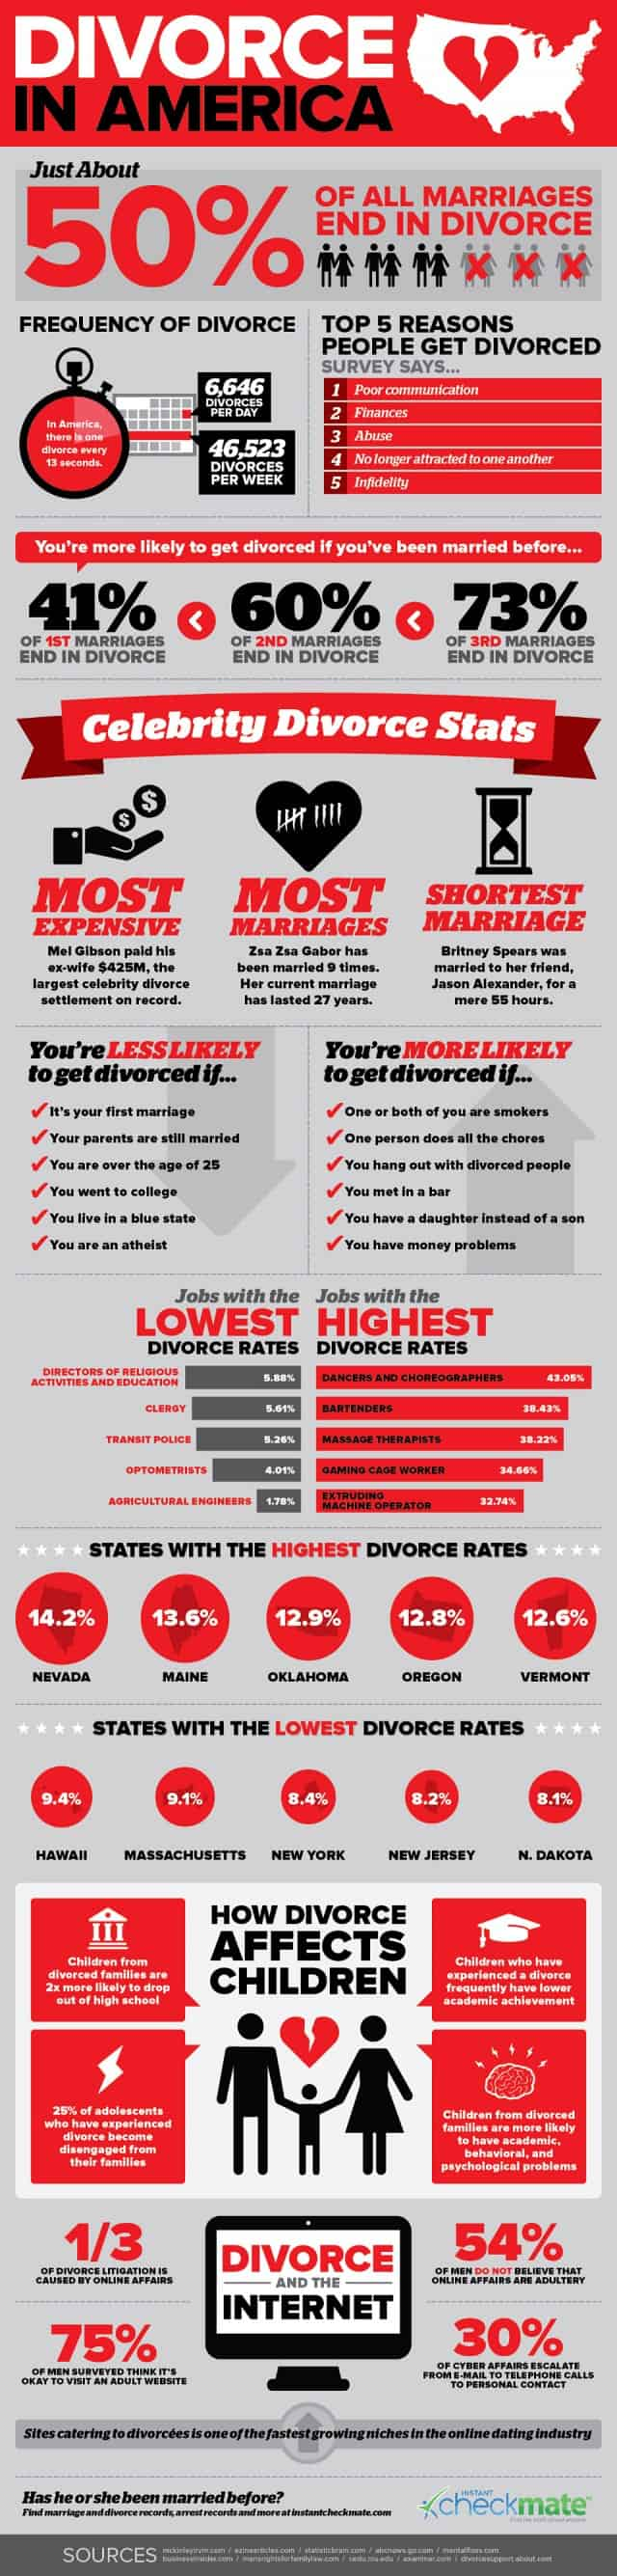 Dating before divorce in usa